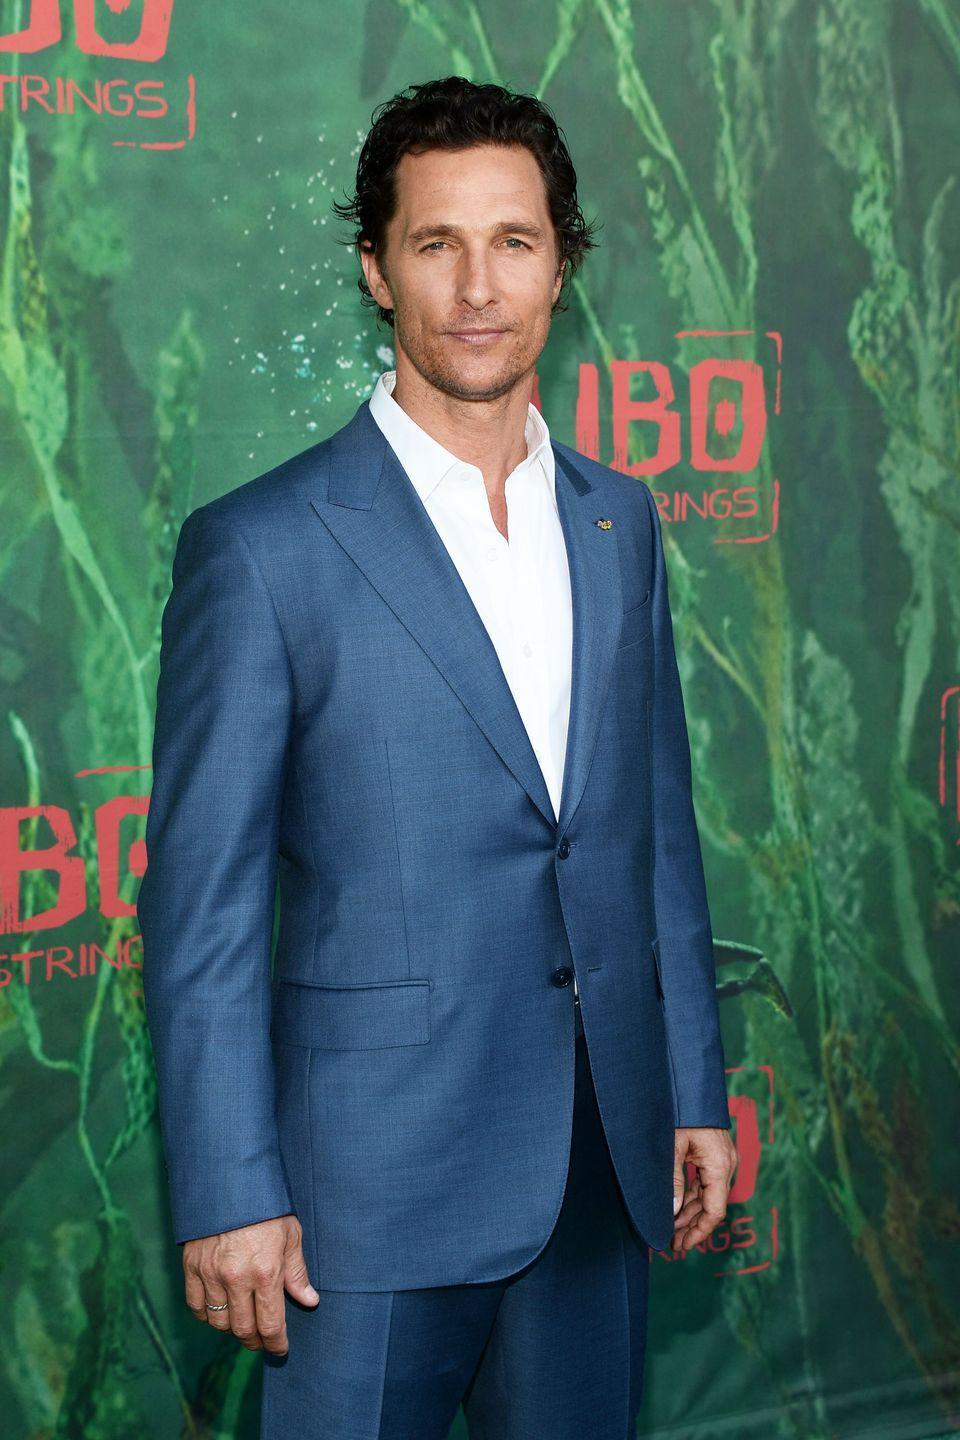 """<p>Matthew McConaughey is a proud University of Texas at Austin alum, but did you know the movie star was also a fraternity brother? He was in <a href=""""http://texasdeltalumni.com/matthew-mcconaughey-92/"""" rel=""""nofollow noopener"""" target=""""_blank"""" data-ylk=""""slk:Delta Tau Delta"""" class=""""link rapid-noclick-resp"""">Delta Tau Delta</a> during his college years.</p>"""